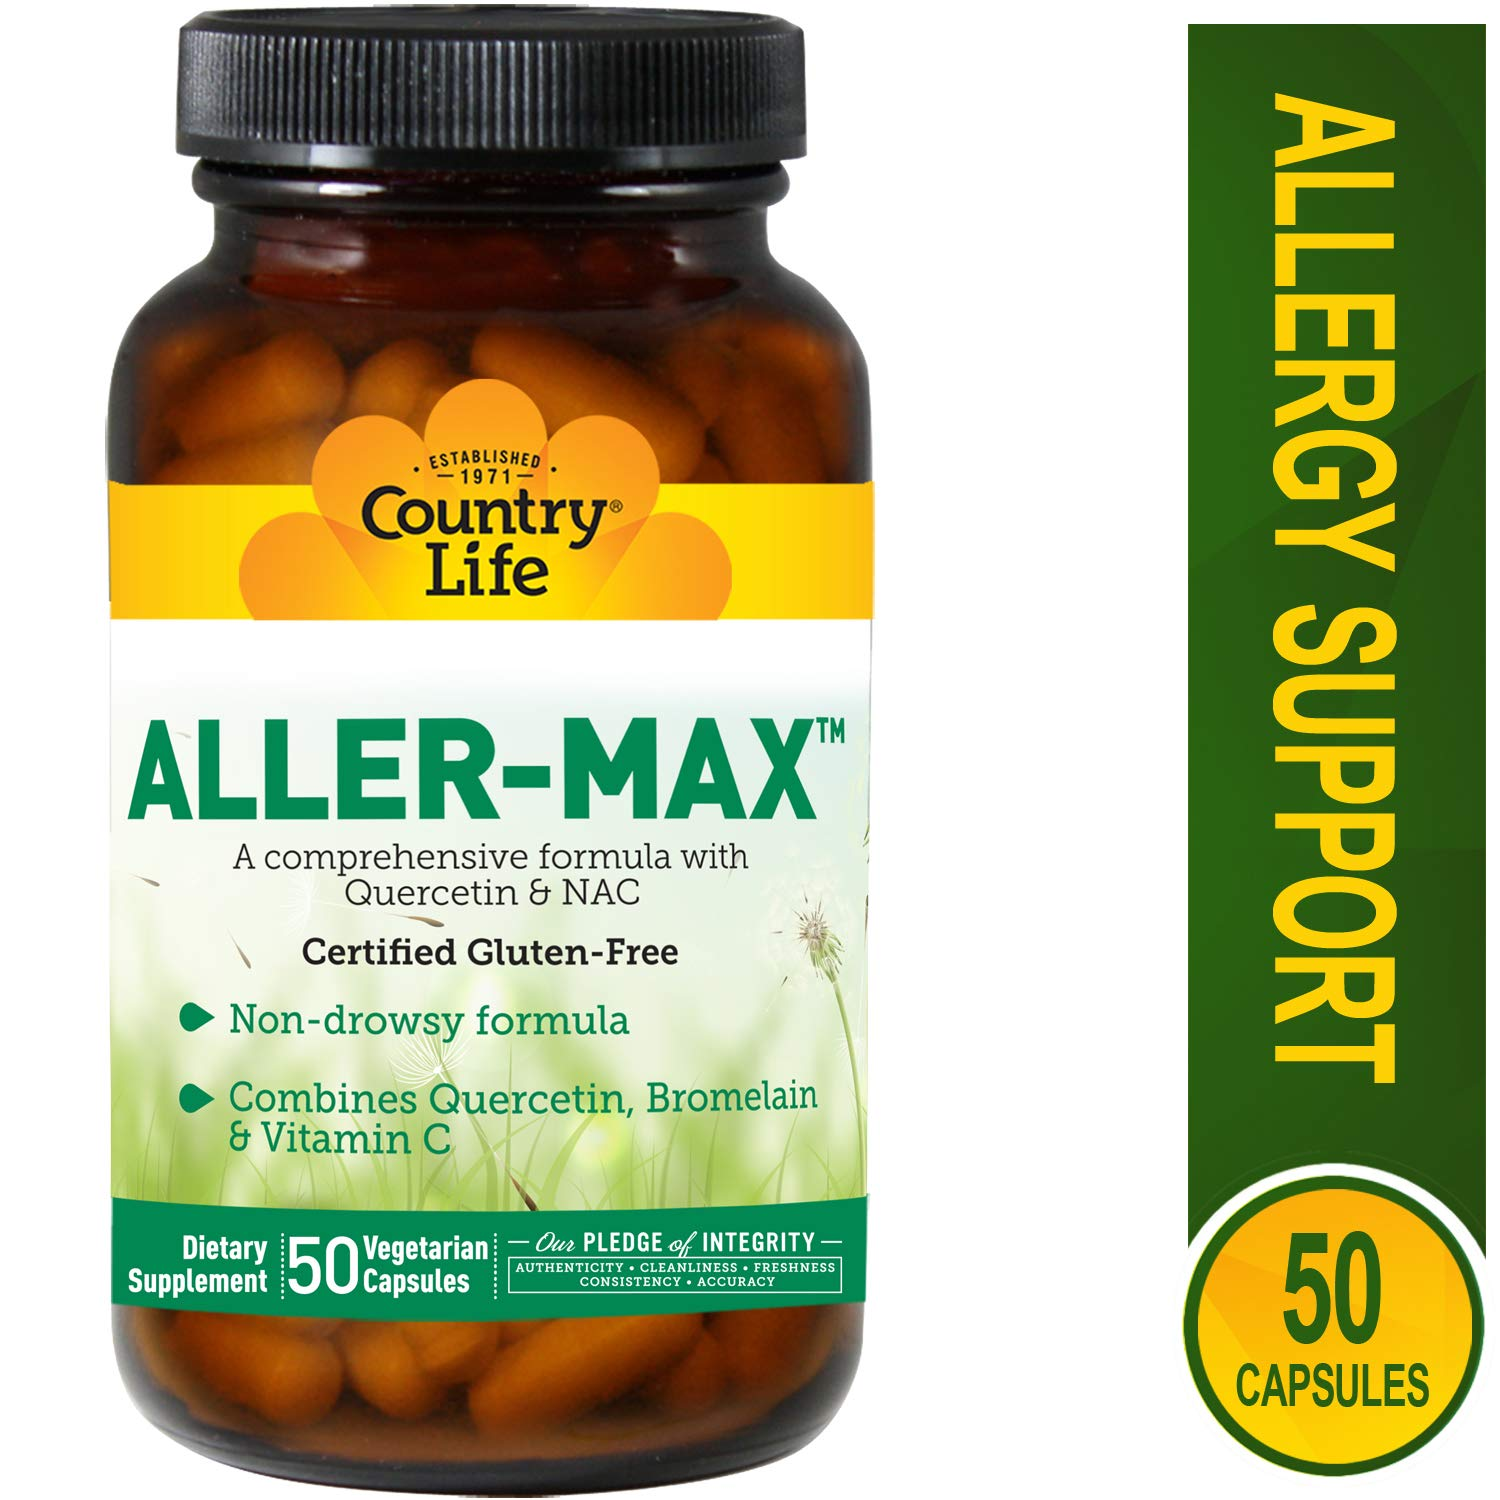 Country Life Aller-Max Non-Drowsy - with Quercetin and NAC - 50 Vegetarian Capsules